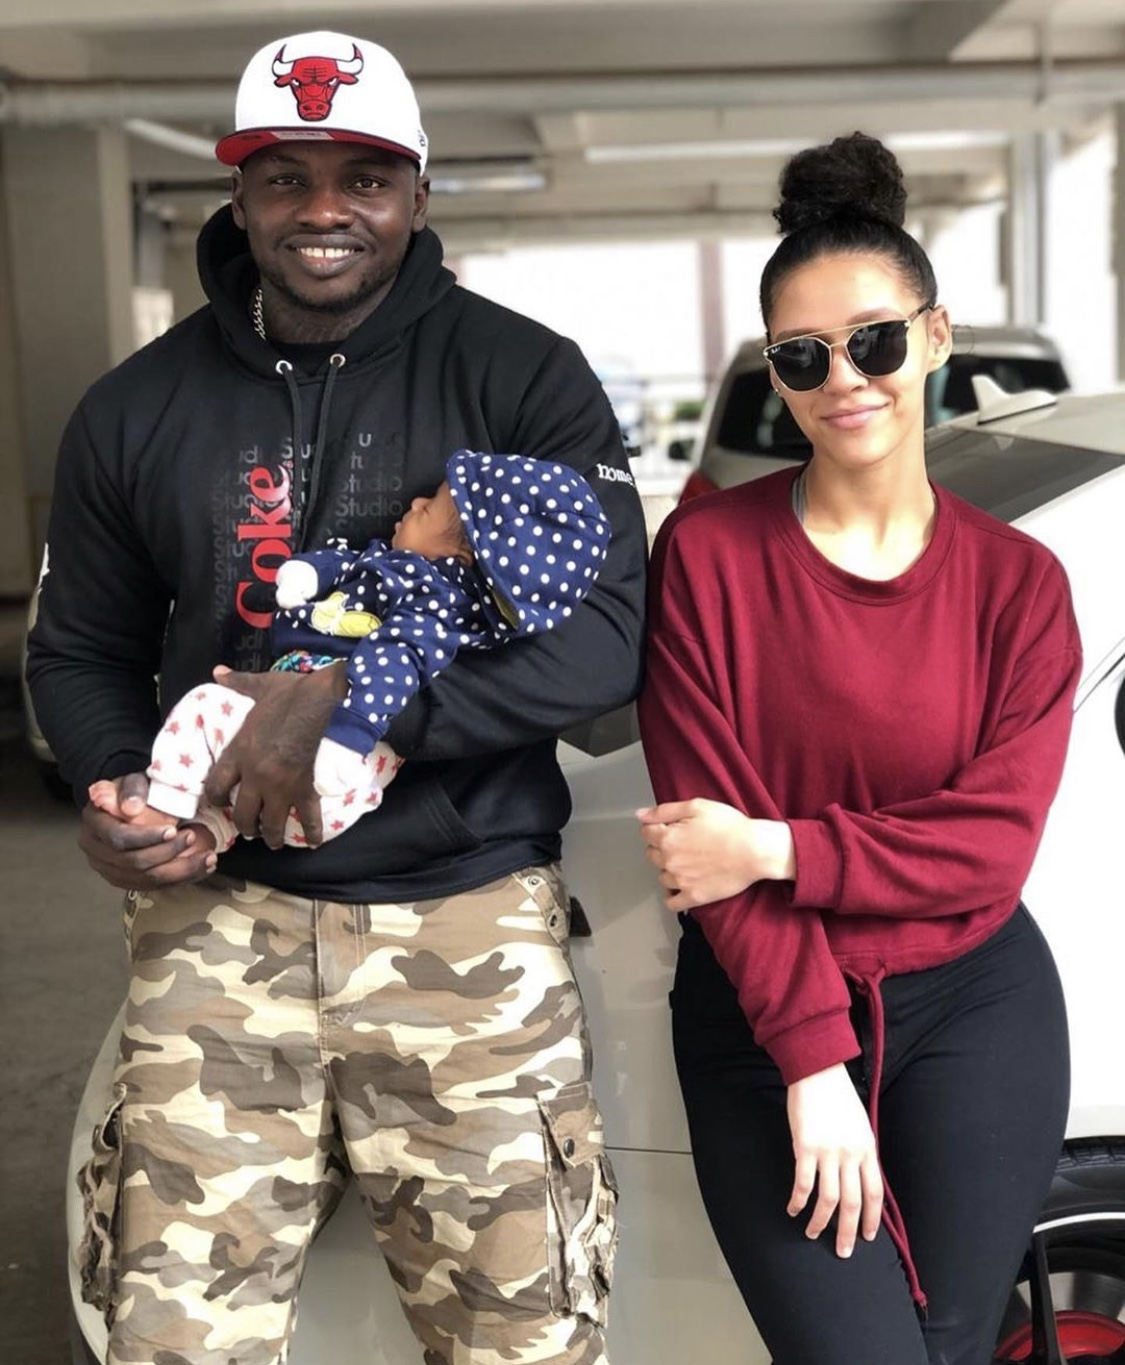 Relationship goals! Khaligragh Jones new amazing photos with his girlfriend and baby girl